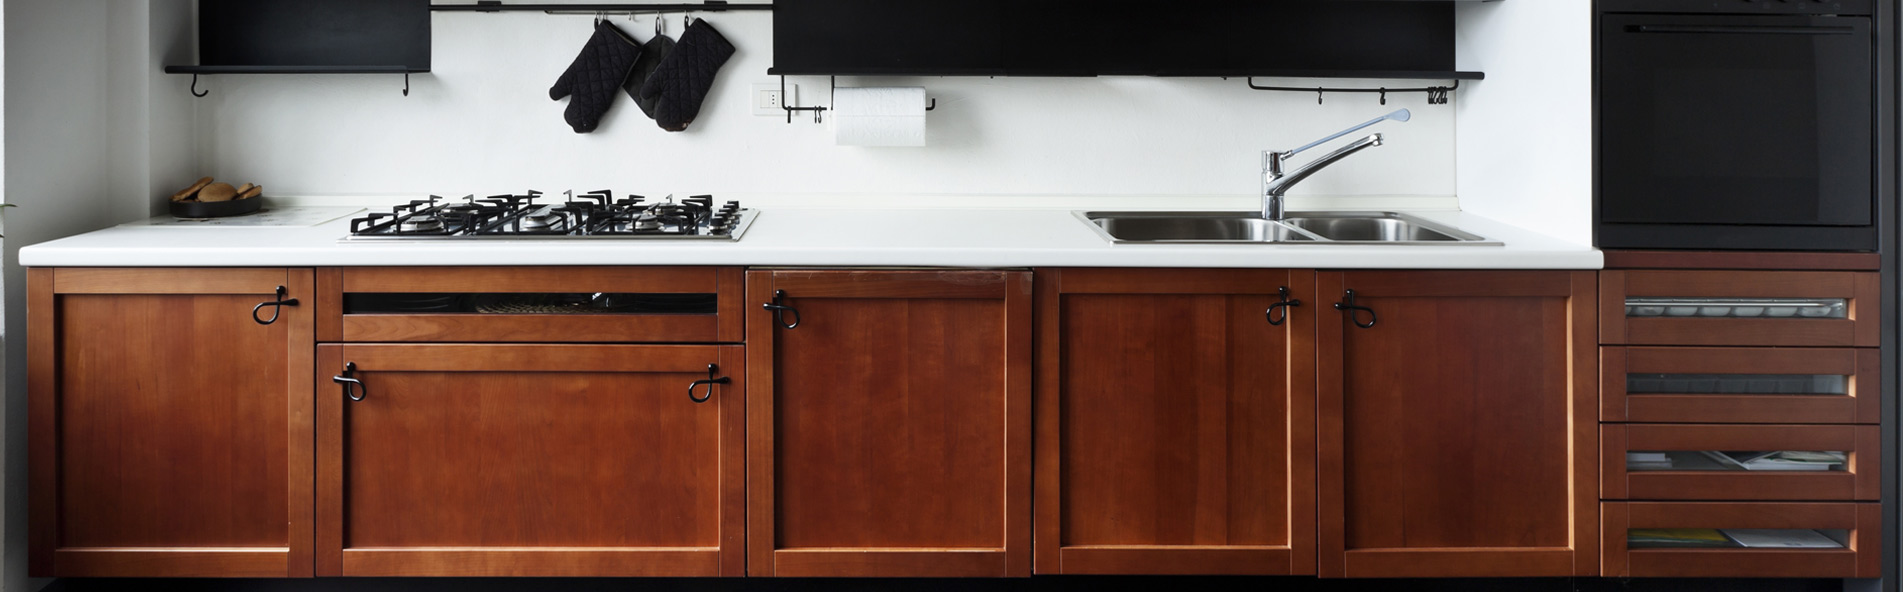 Cabinet maker in oroville ca custom countertop contractor for Lineal foot counter